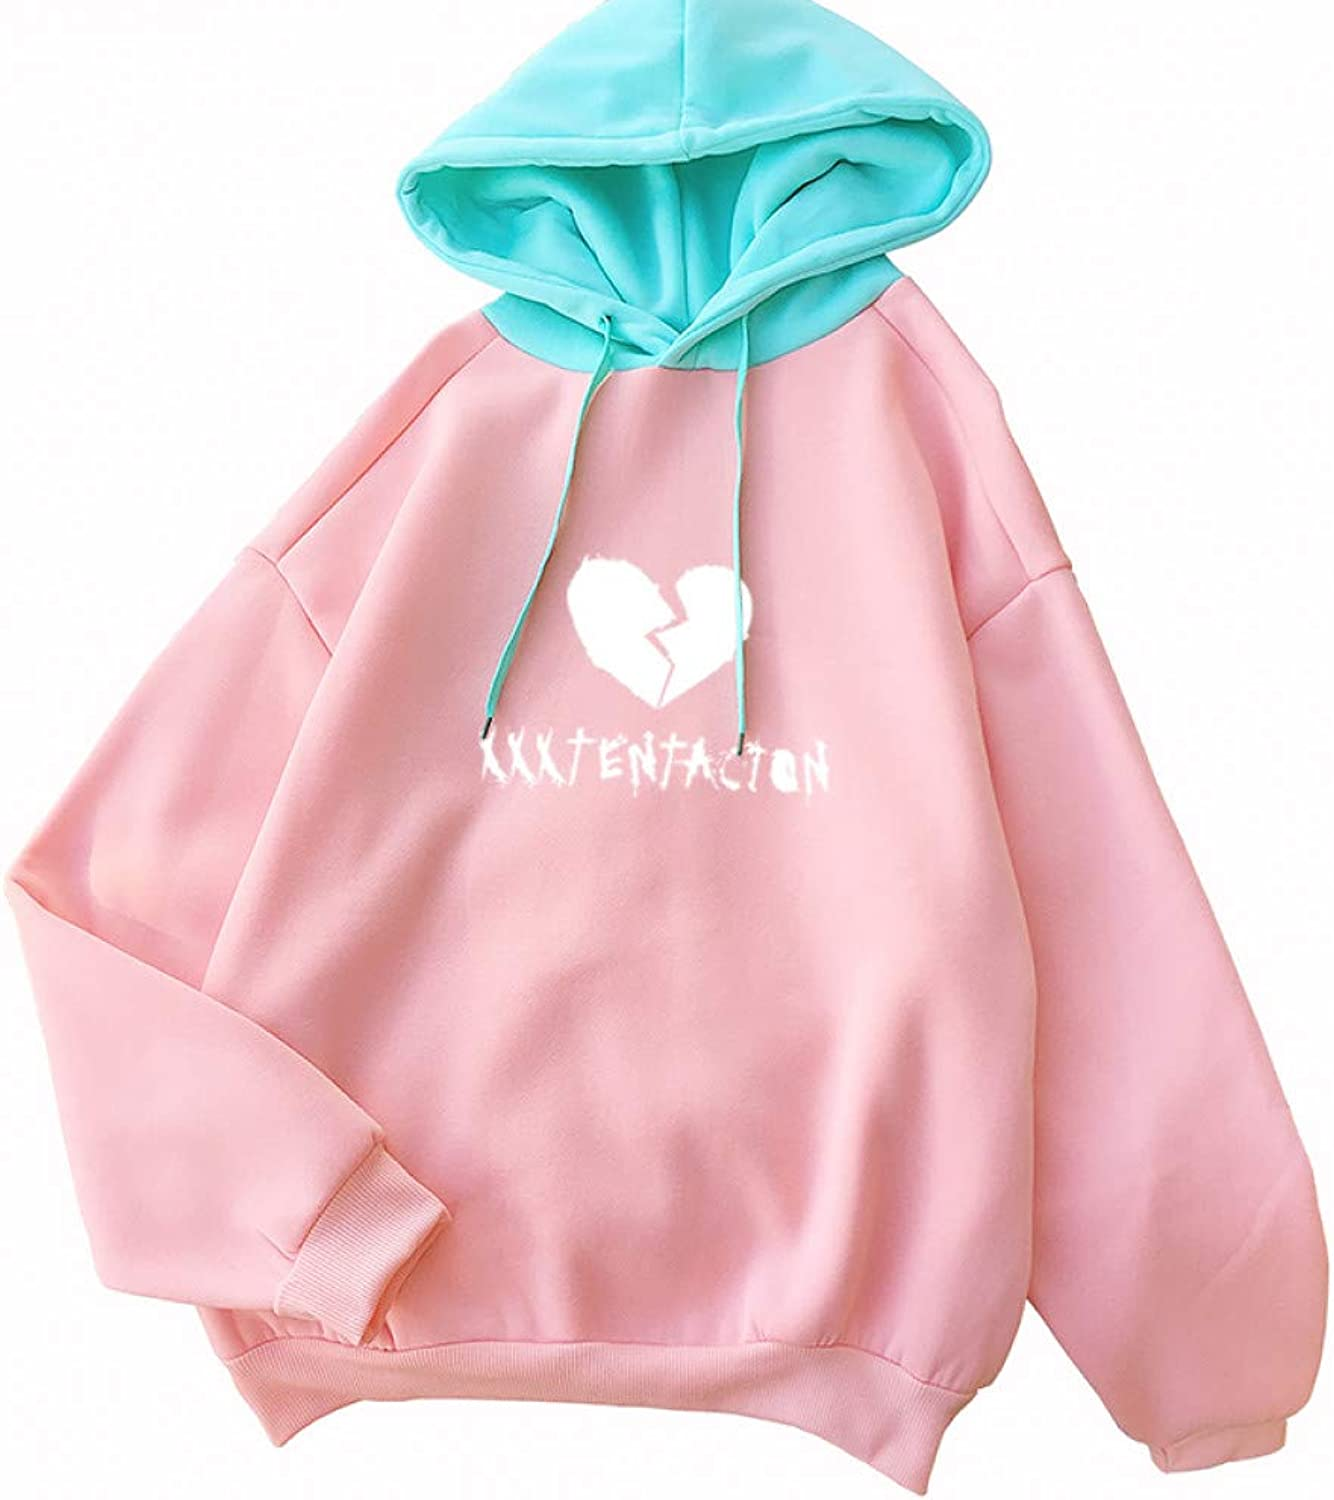 ZJSWCP Sweatshirt Hoodie Sweatshirt Women Pink Green Splicing Hooded Atutumn Korean Harajuku Casual Fleece Kawaii Letter Heart Print Sweater